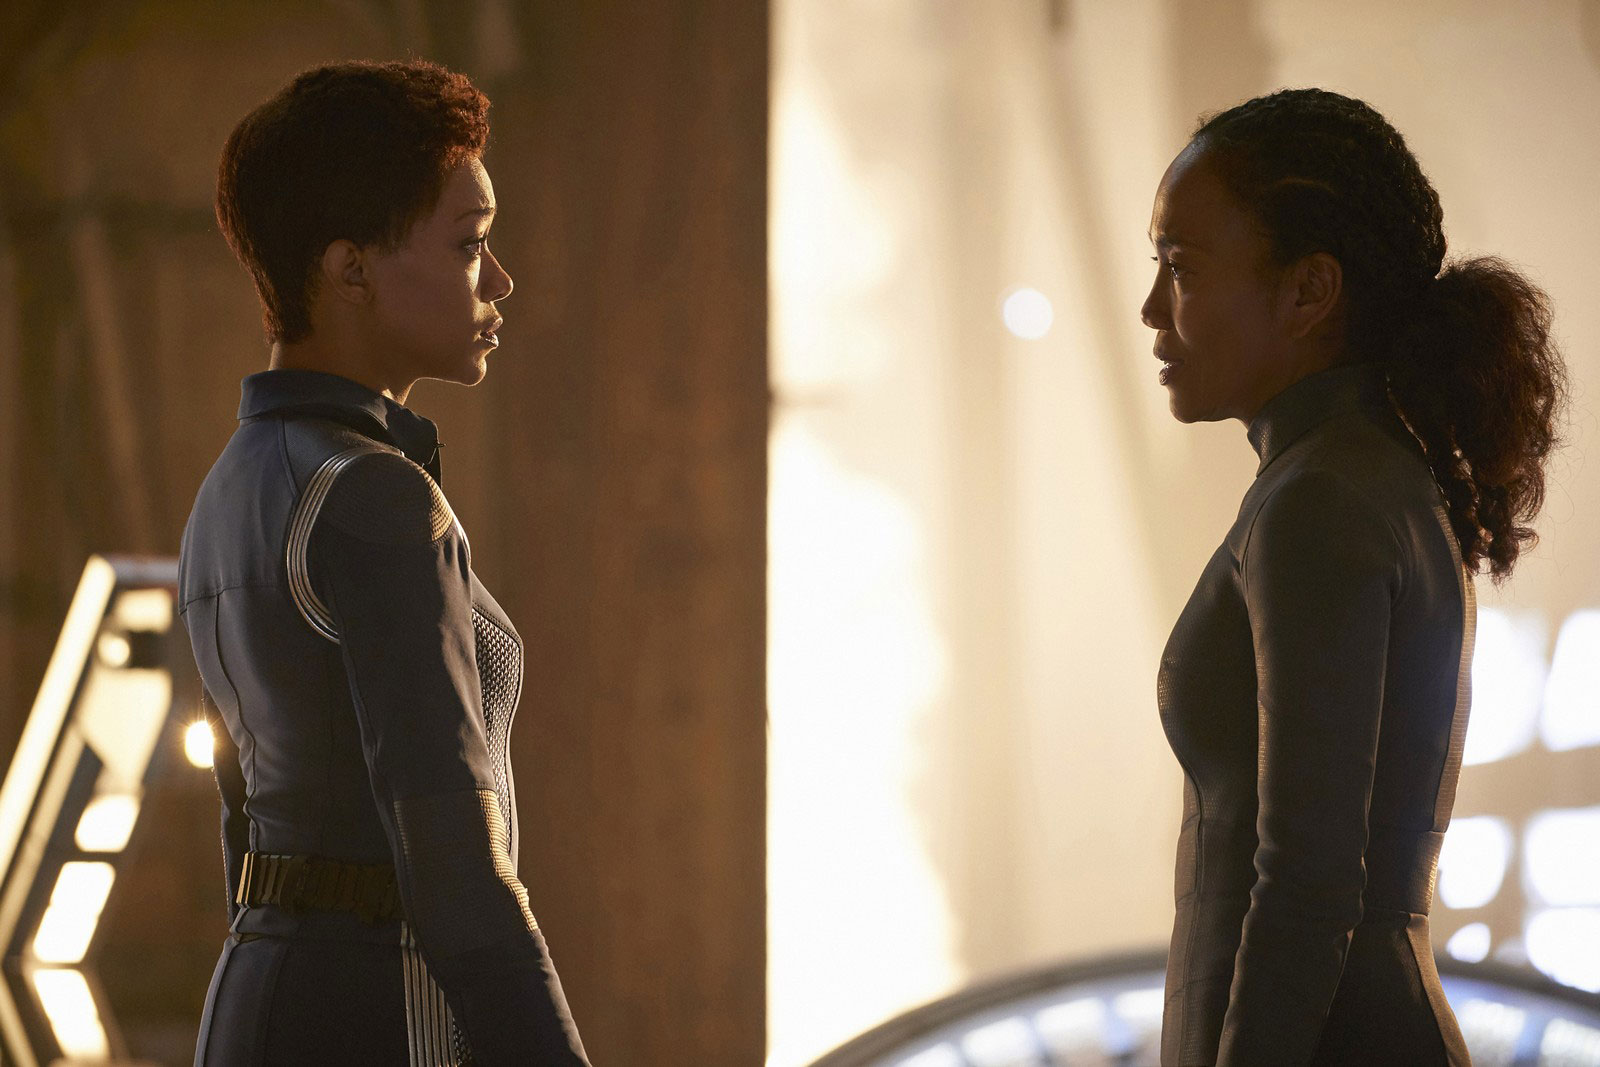 Sonequa Martin-Green as Michael Burnham and Sonja Sohn as Burnham's mother